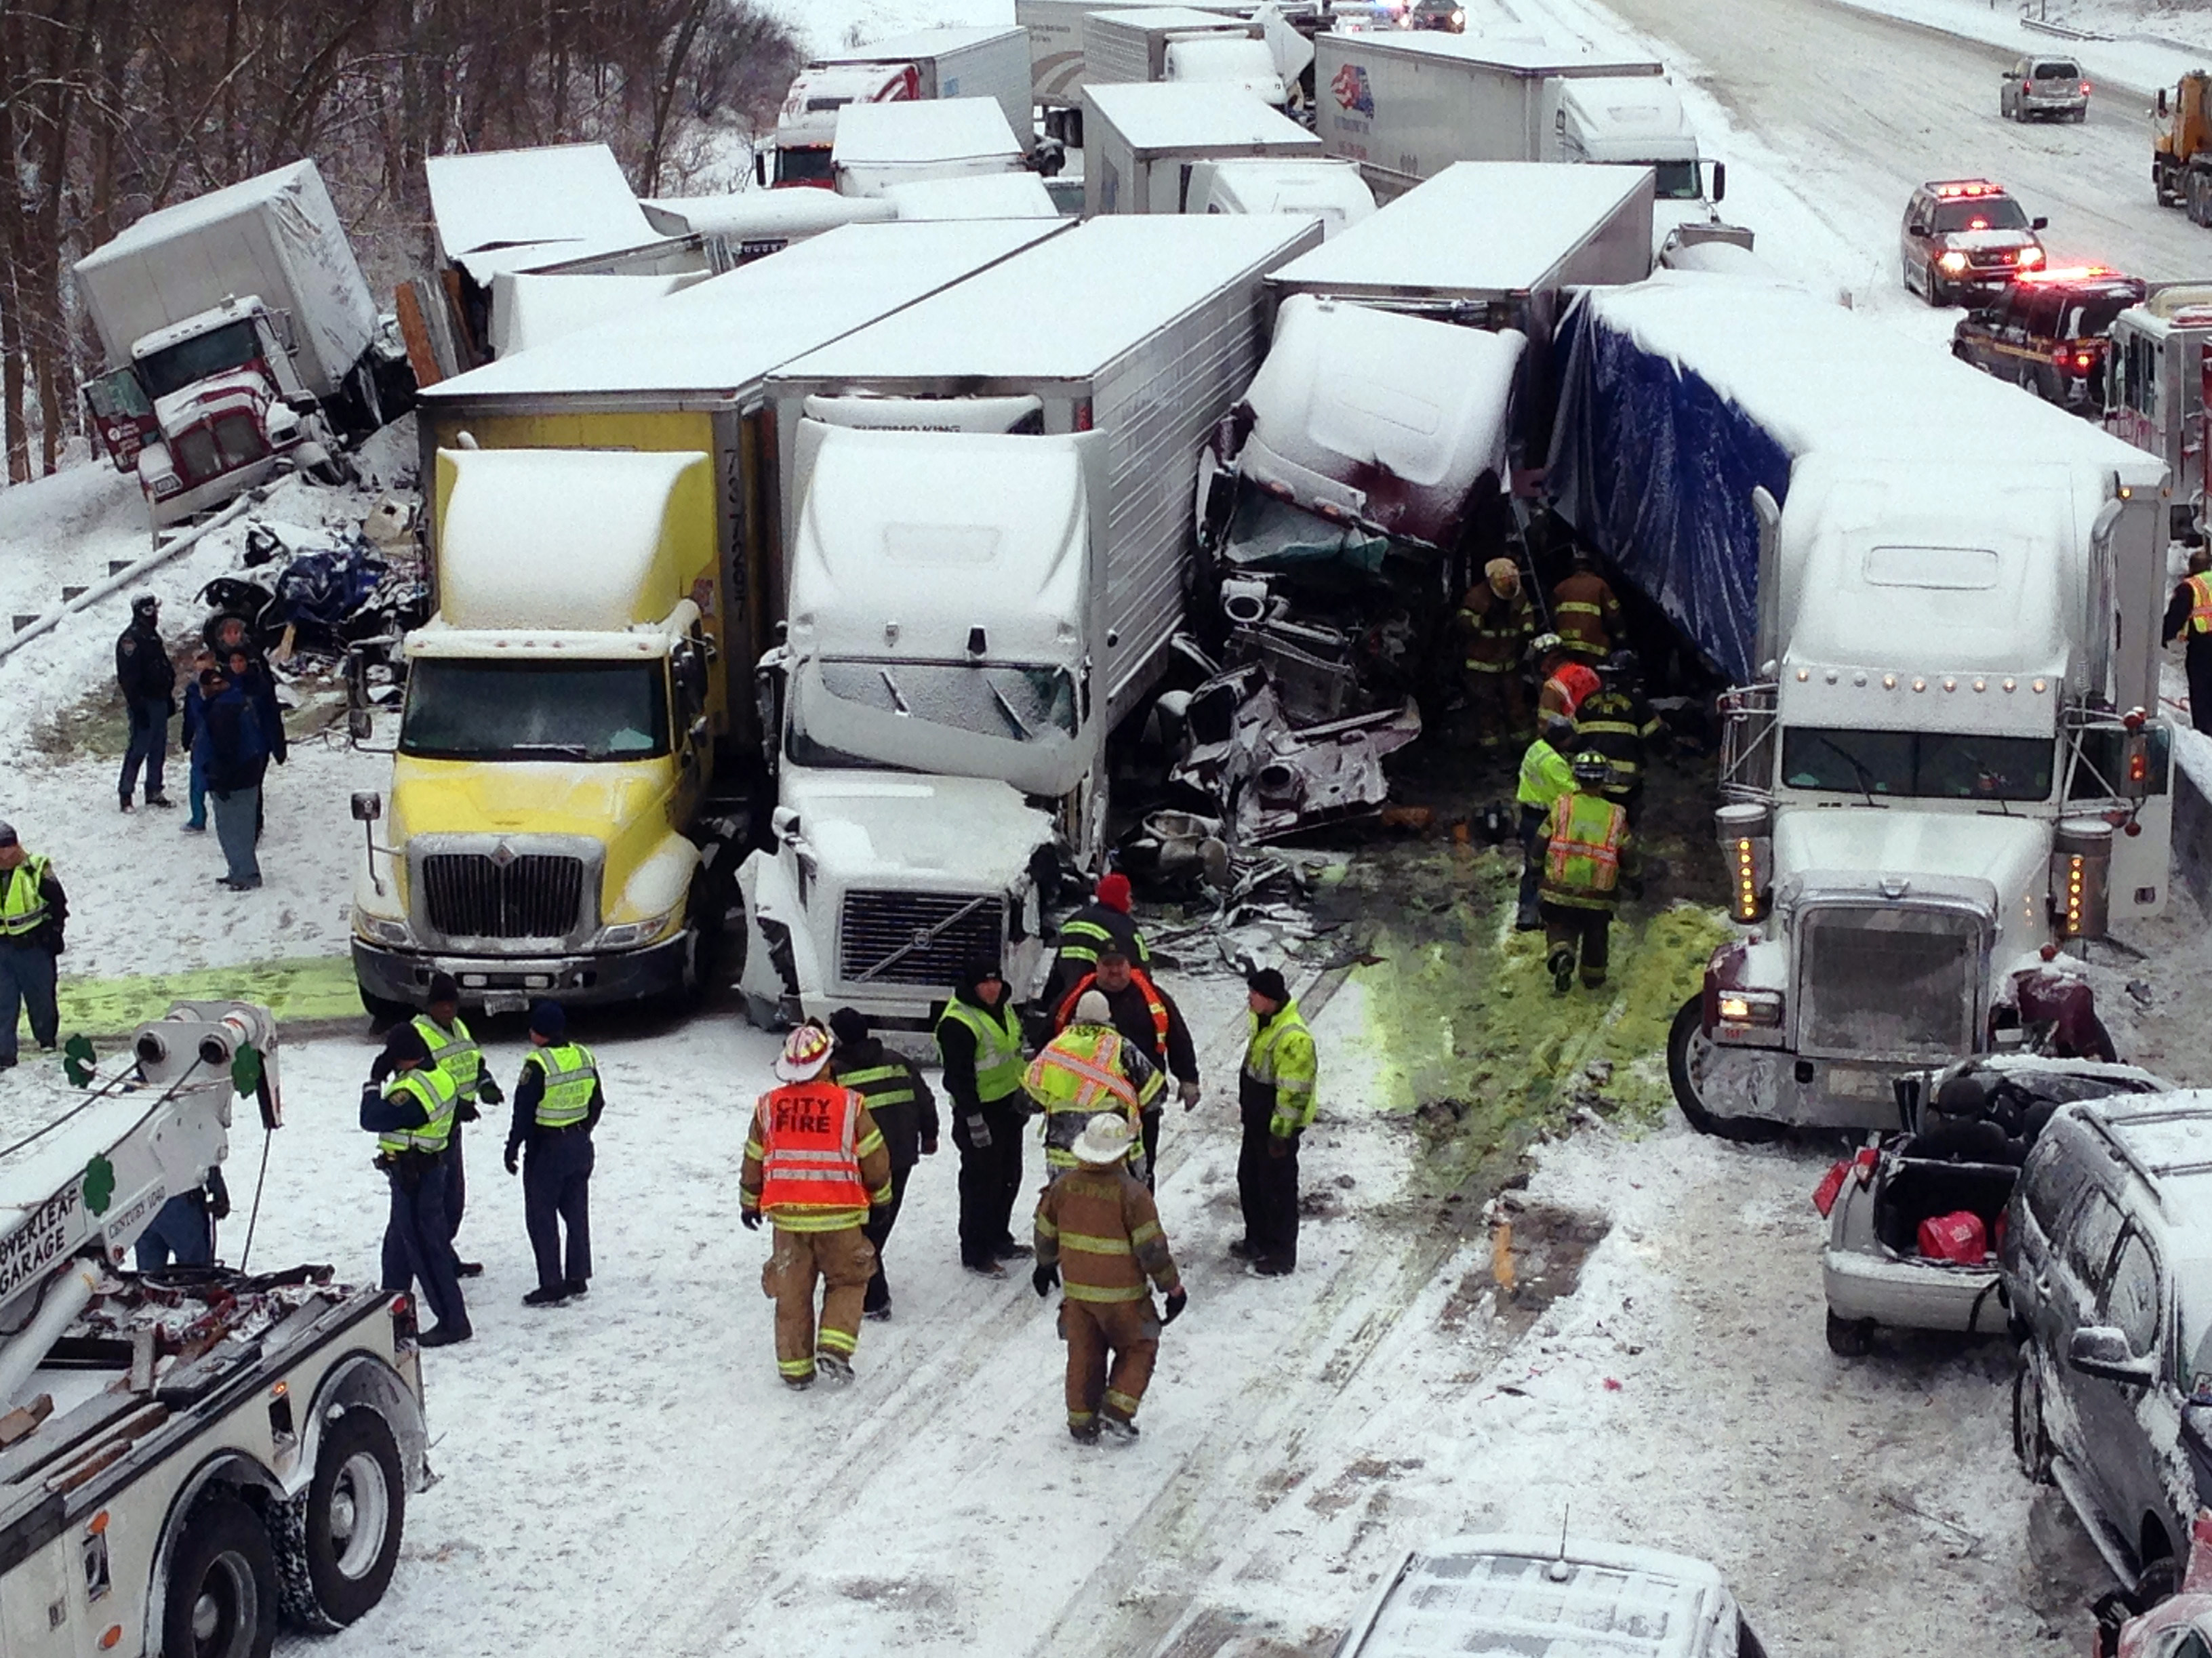 At Least 3 People Killed In 40-Vehicle Pileup In Indiana